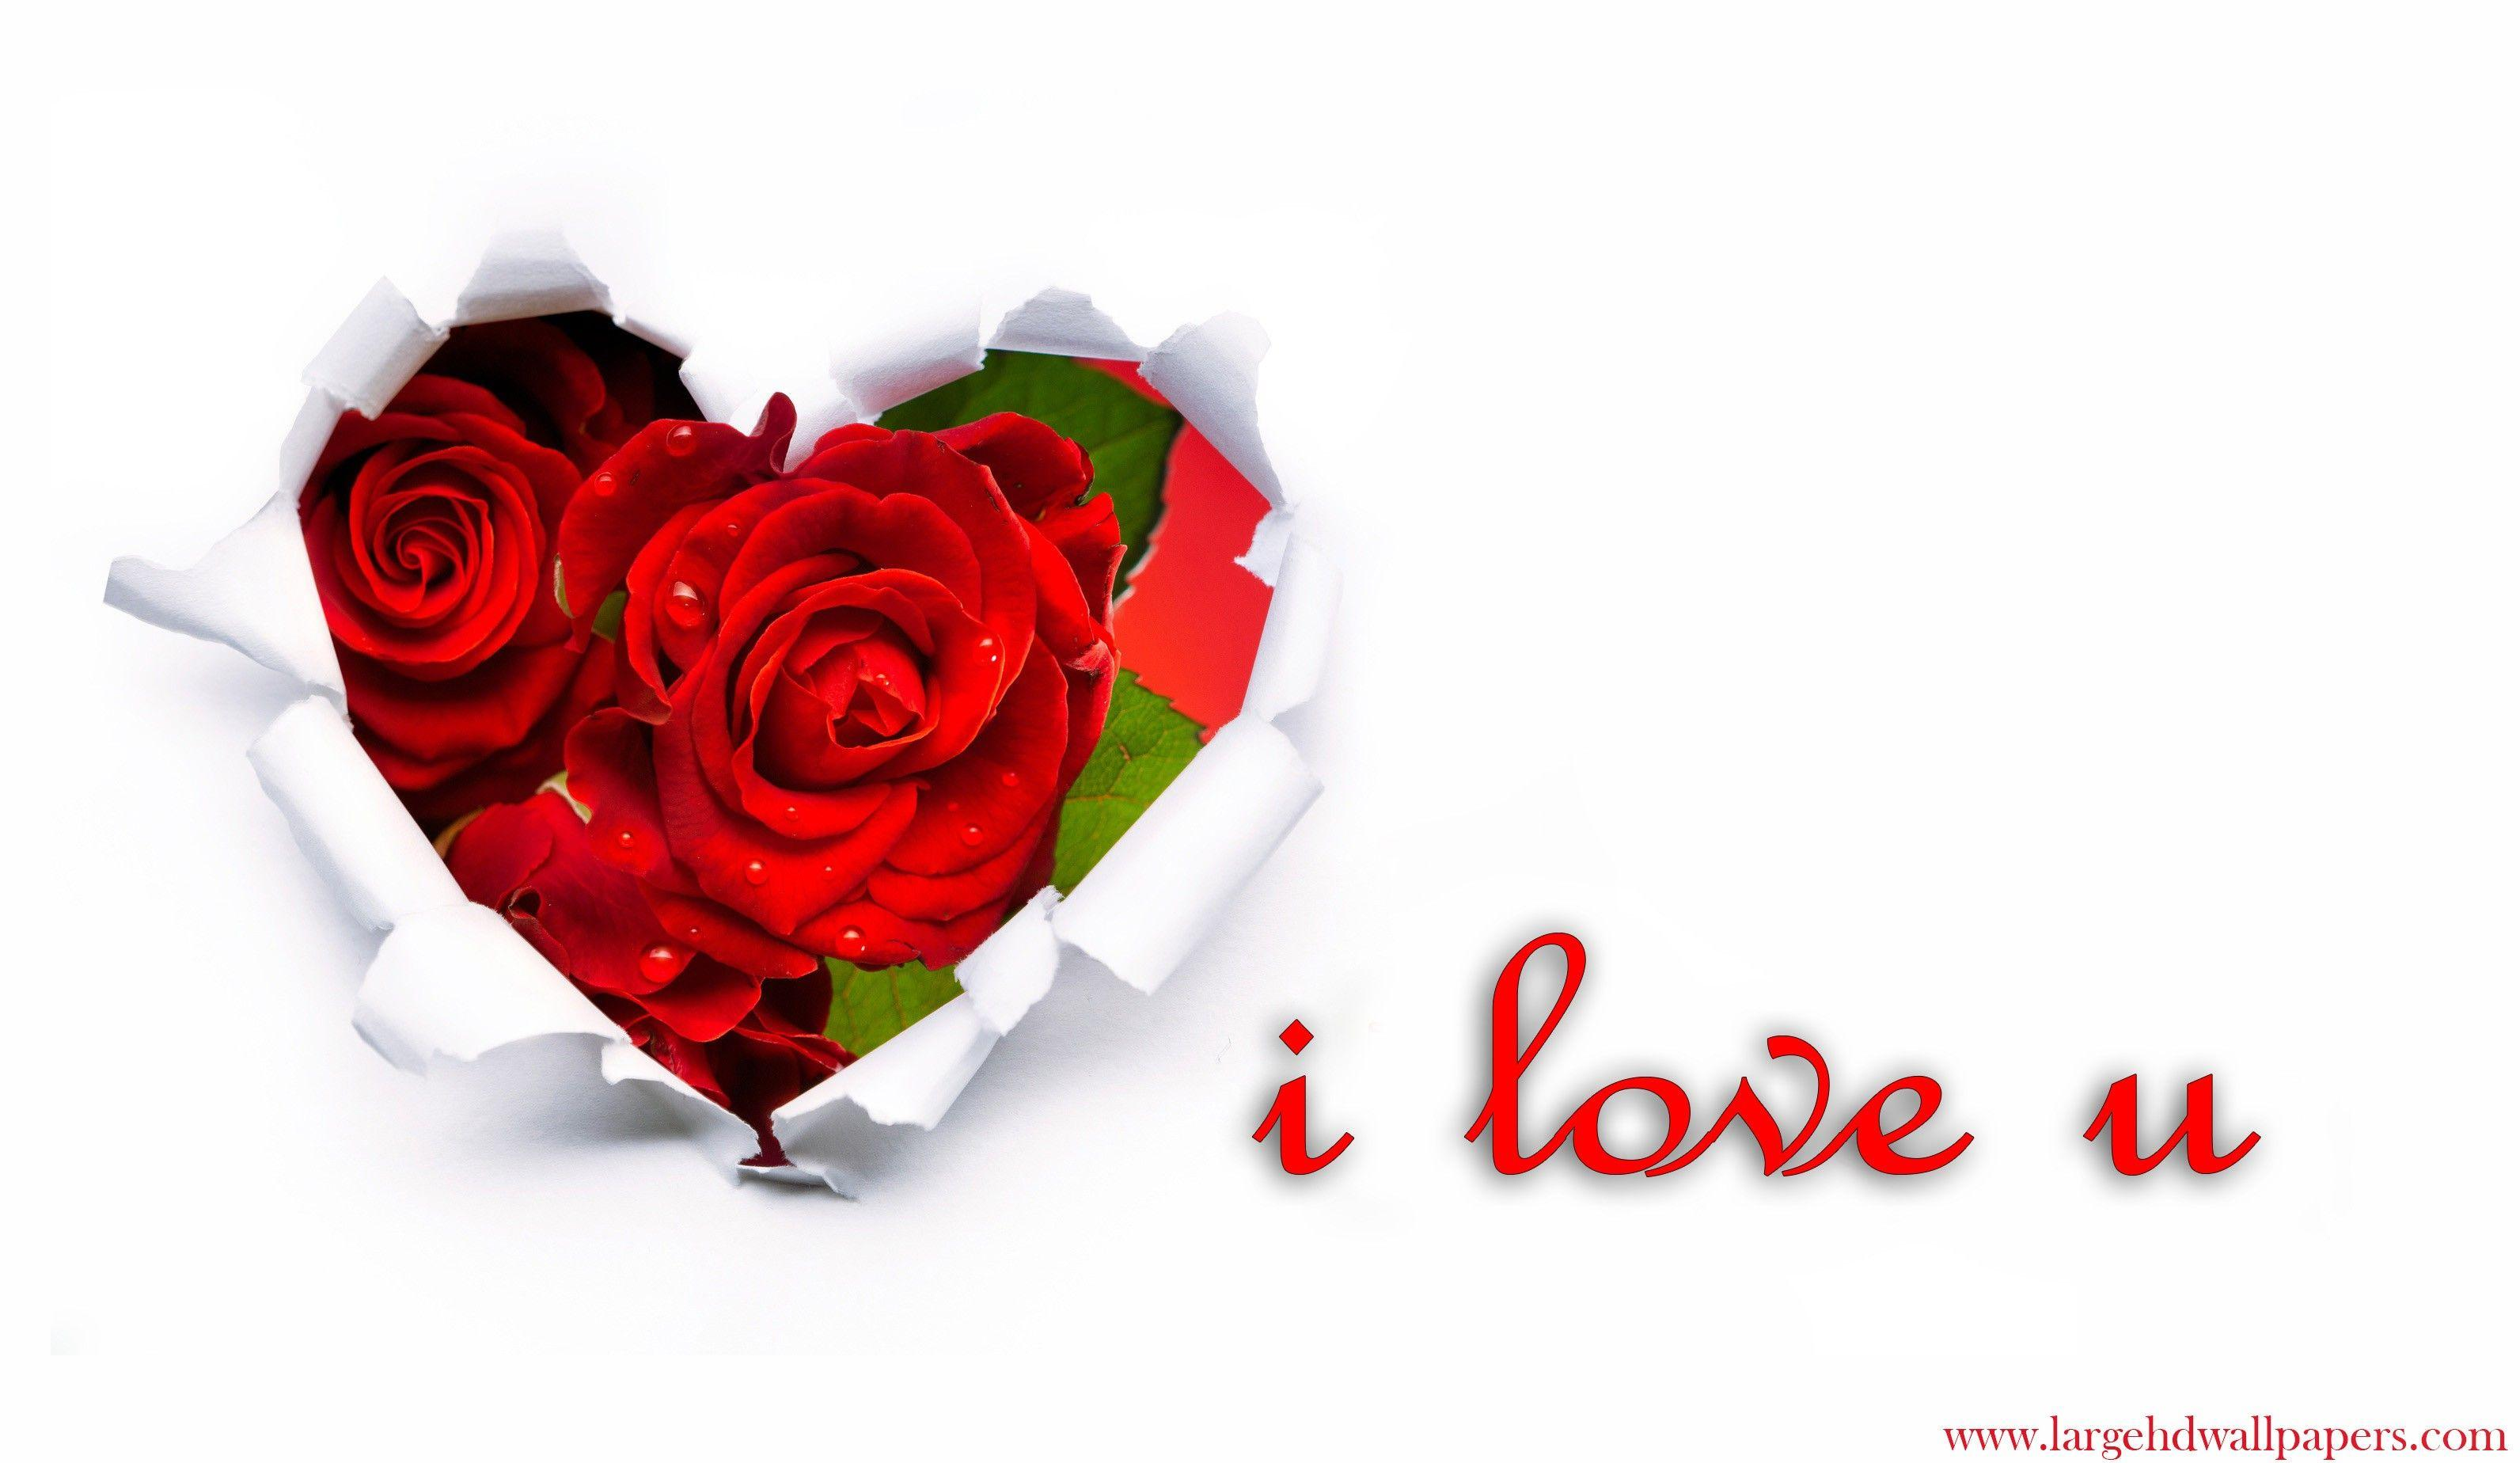 I Love U Rose Hearts Desktop Backgrounds 2016 Wallpapers